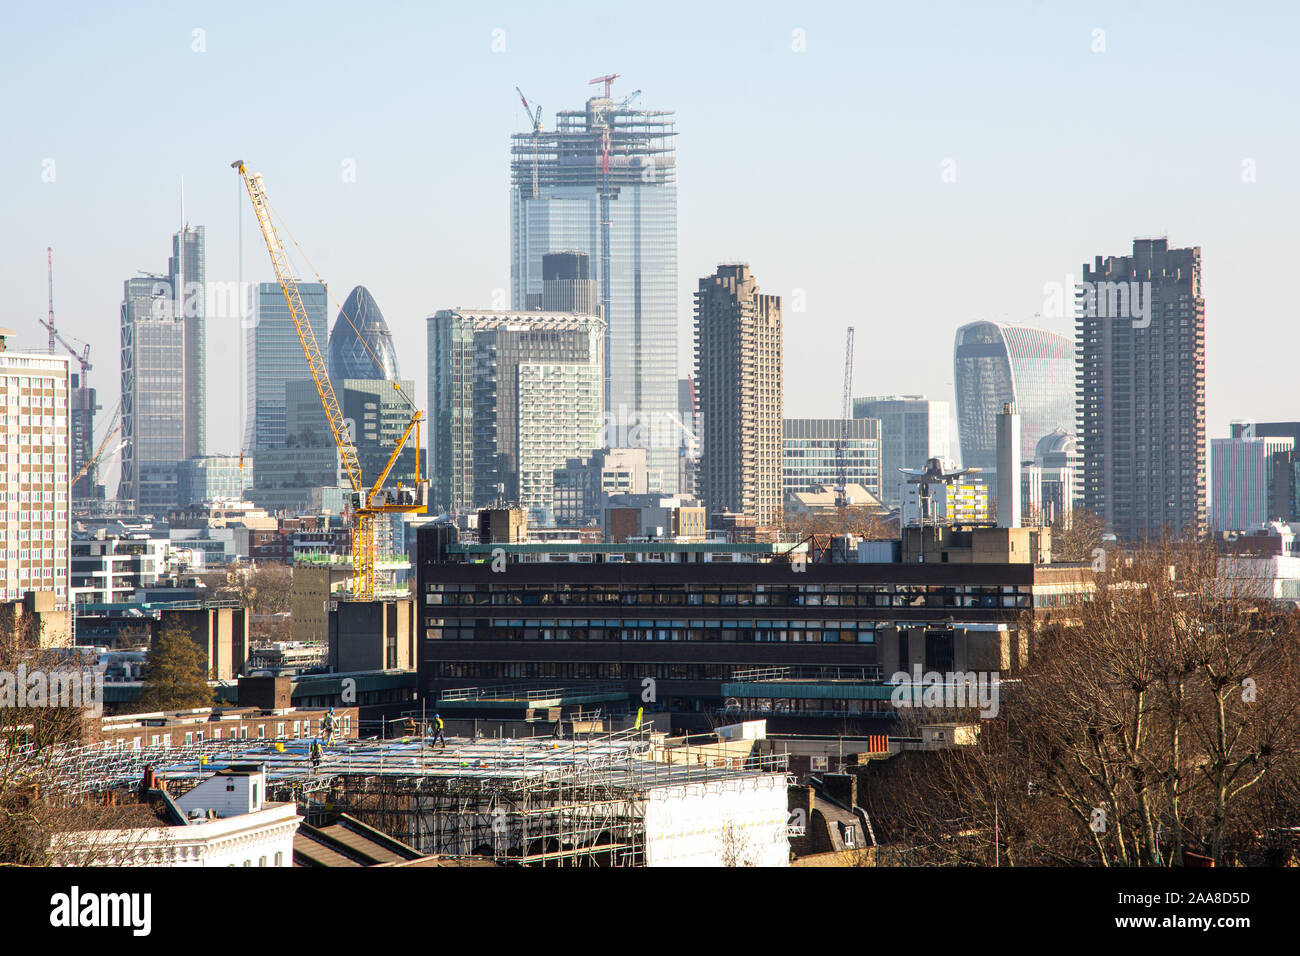 London, England, UK - February 27, 2019: The 22 Bishopsgate skyscrape approaches full height in the fast evolving skyline of the City of London financ Stock Photo